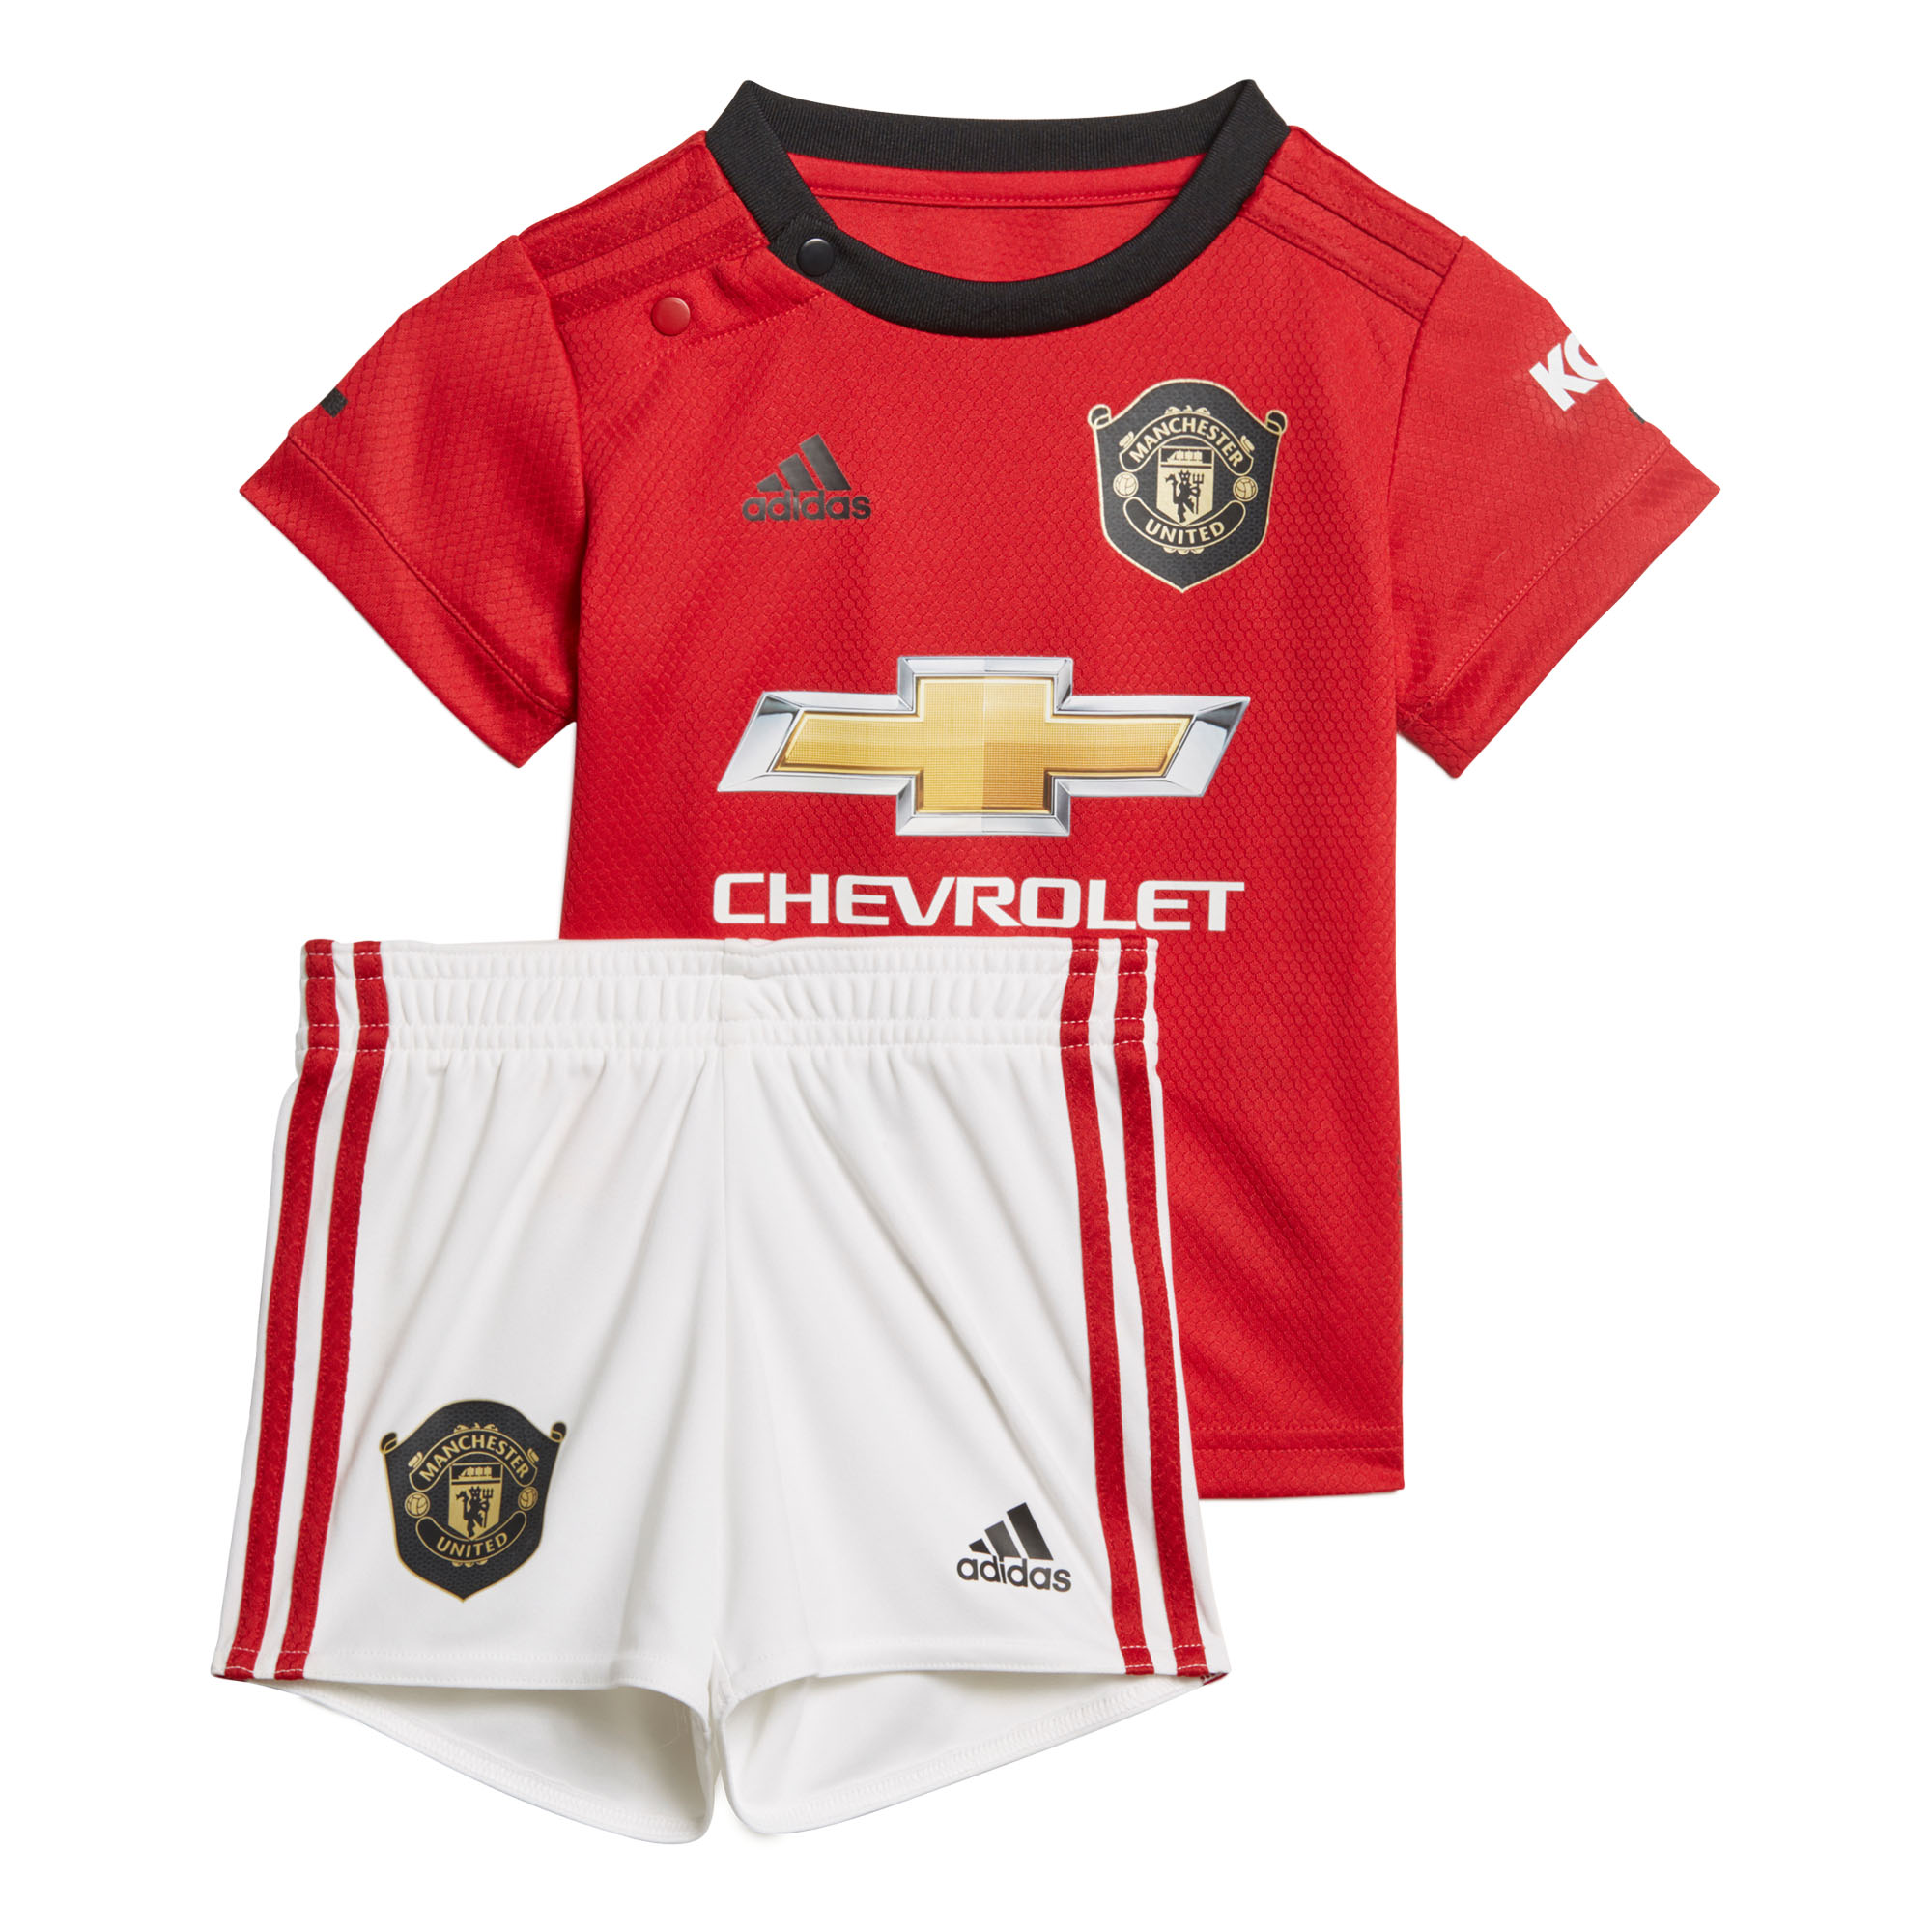 huge selection of 50bbb 1da7c Details about adidas Manchester United 2019/20 Kids Infant Baby Home  Football Kit Red